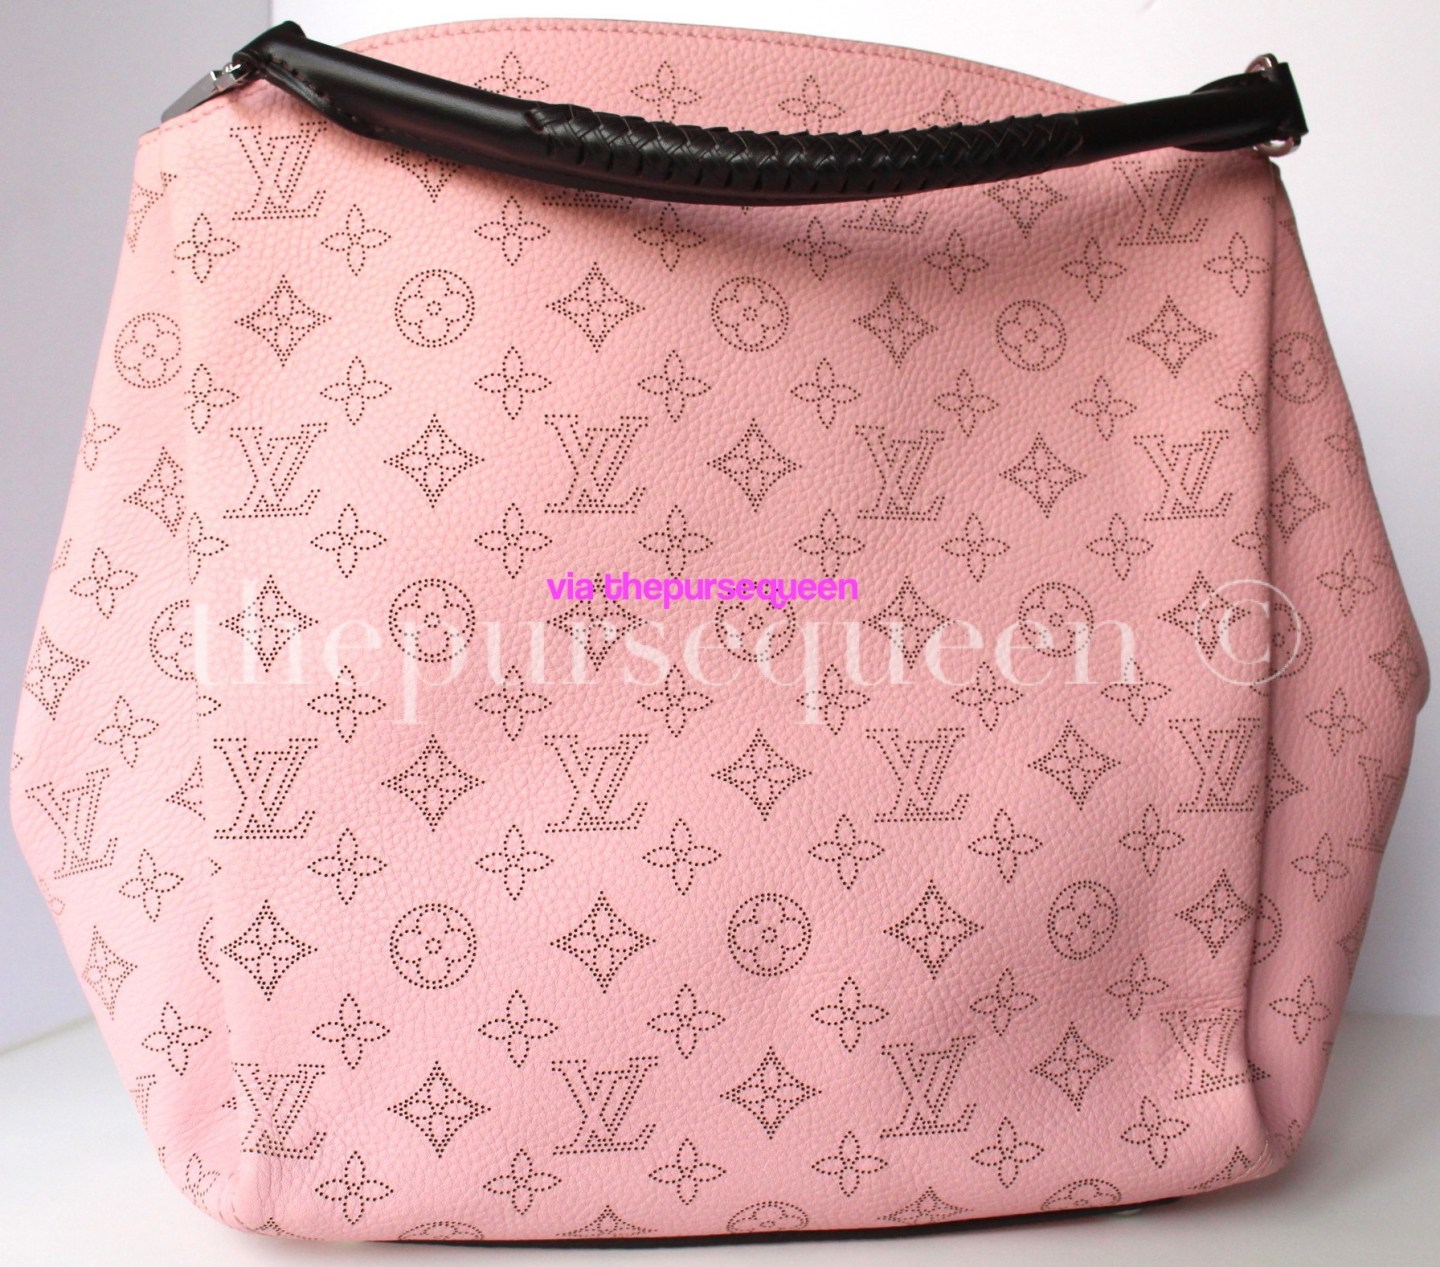 f86d2af195 Louis Vuitton Babylone PM Mahina Leather Replica Review - The Purse ...